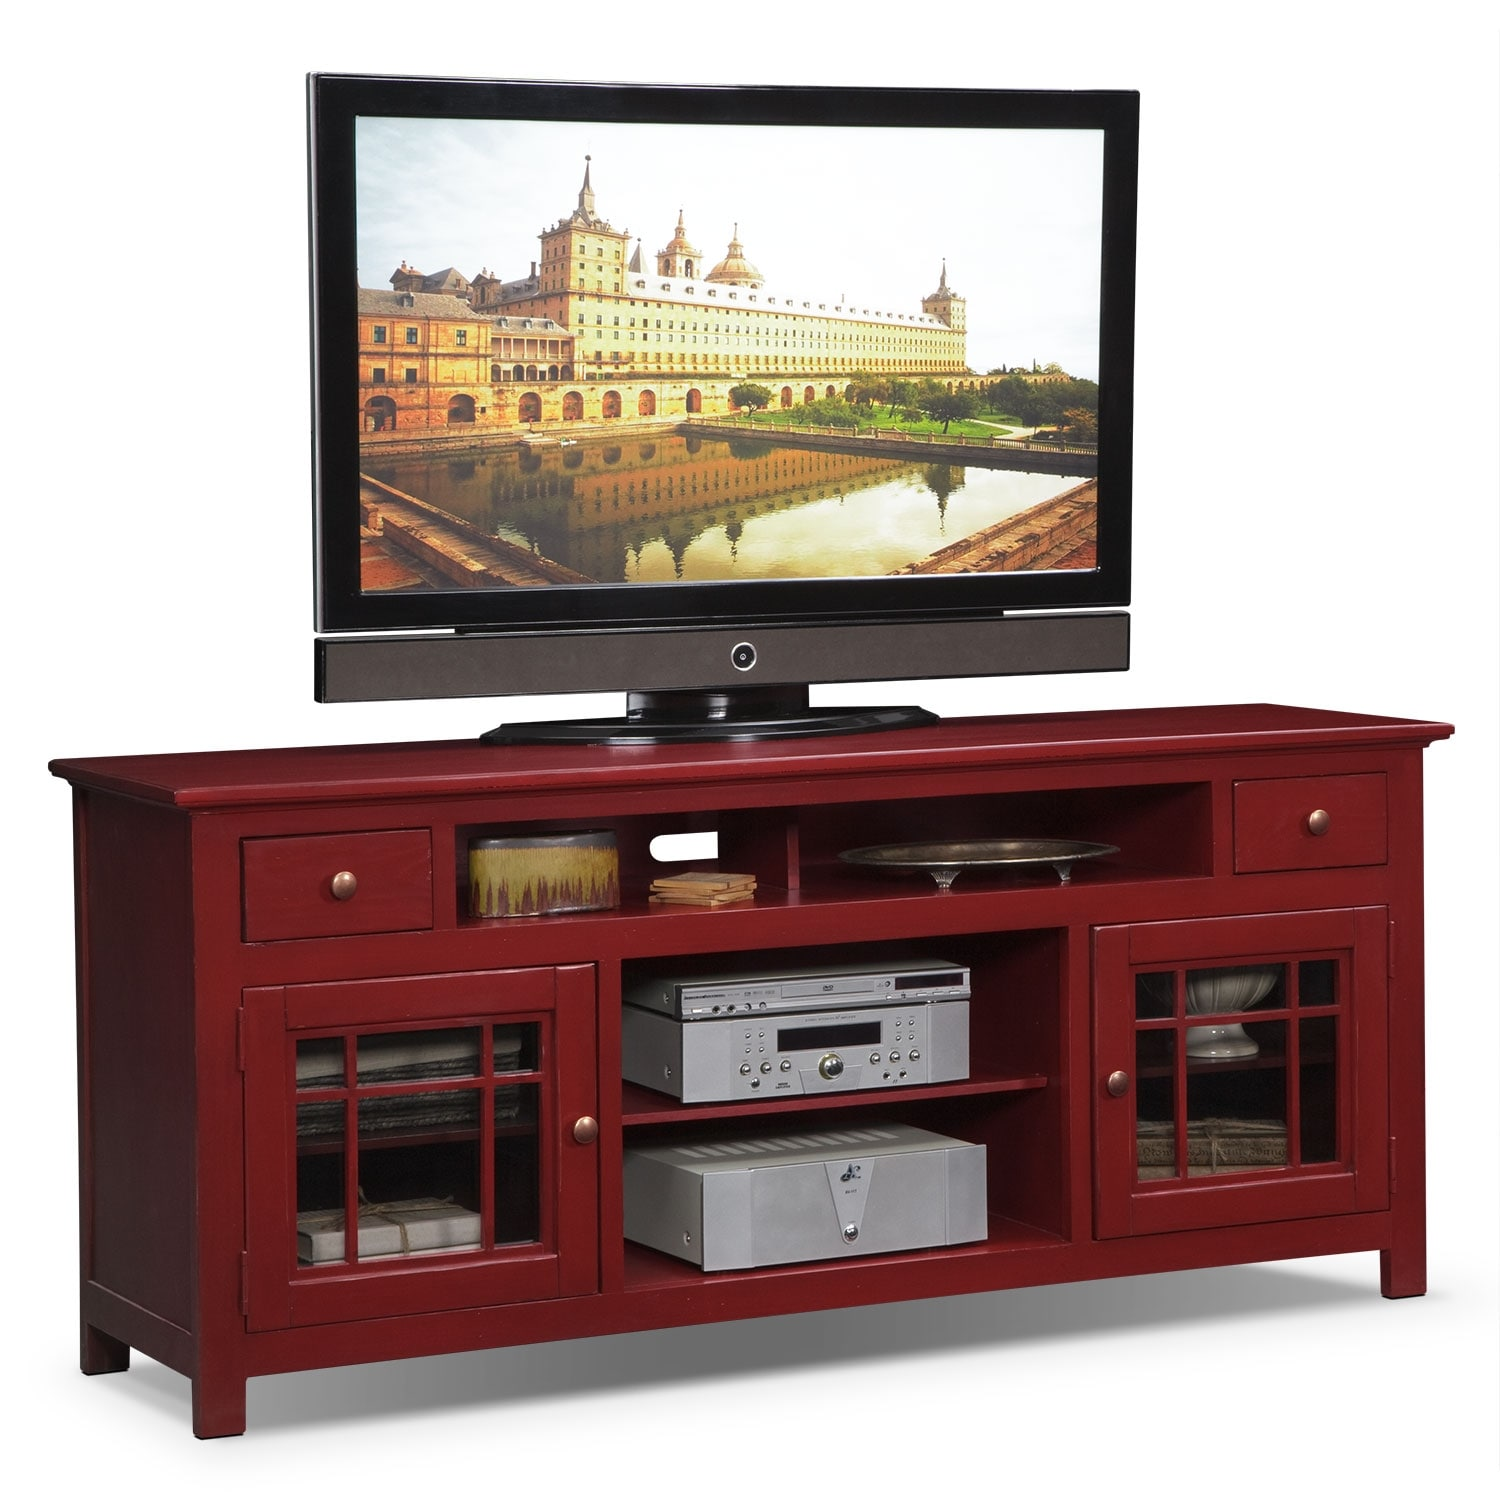 Merrick Red 74 Tv Stand Value City Furniture